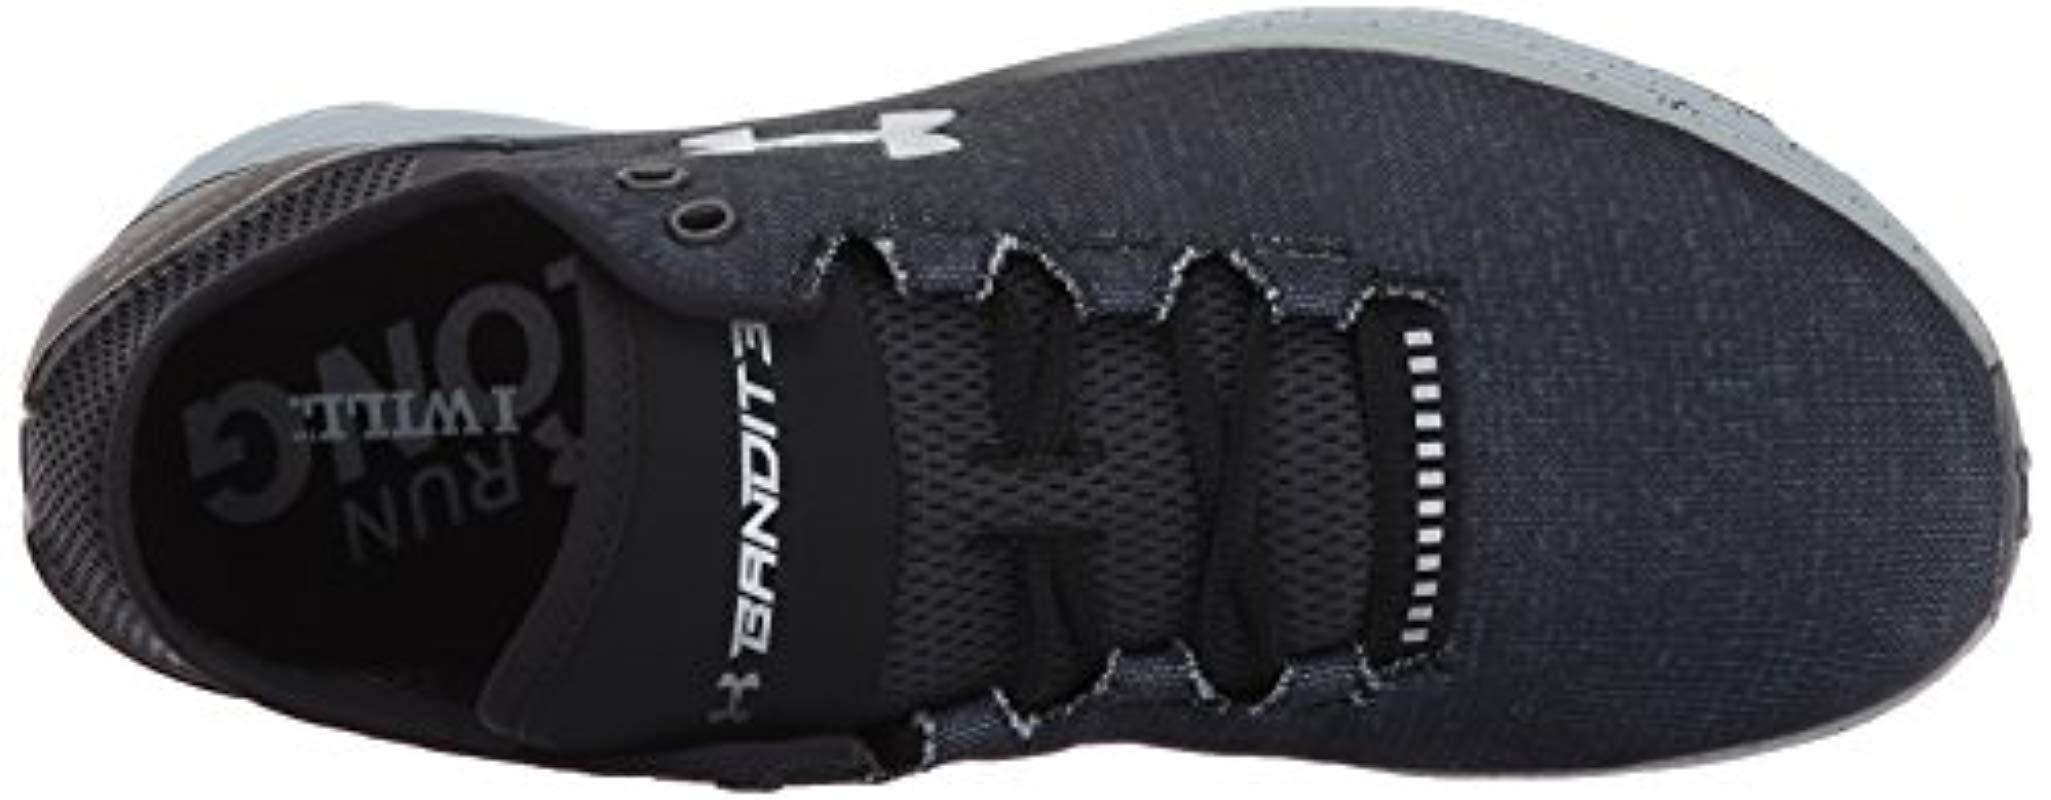 f6cce659e62 Under Armour - Gray Ua Charged Bandit 3 Running Shoes for Men - Lyst. View  fullscreen